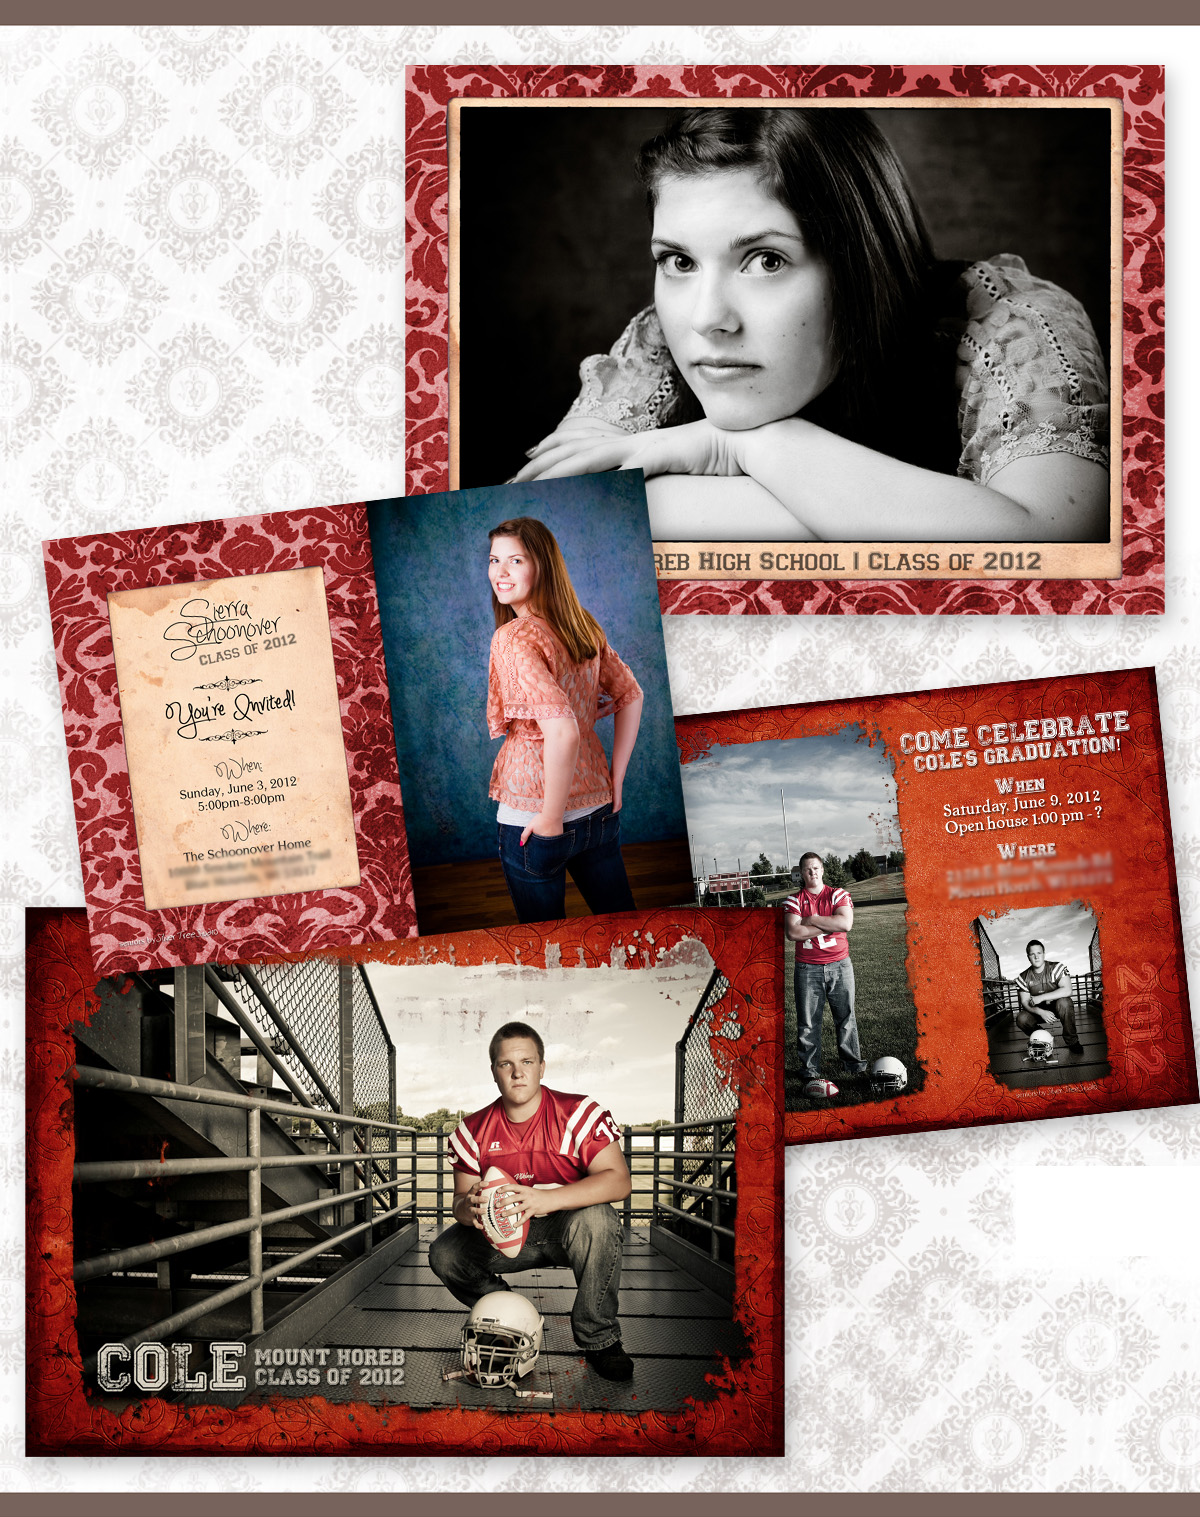 Reminder - Now's the time to order Graduation Announcements - 2013